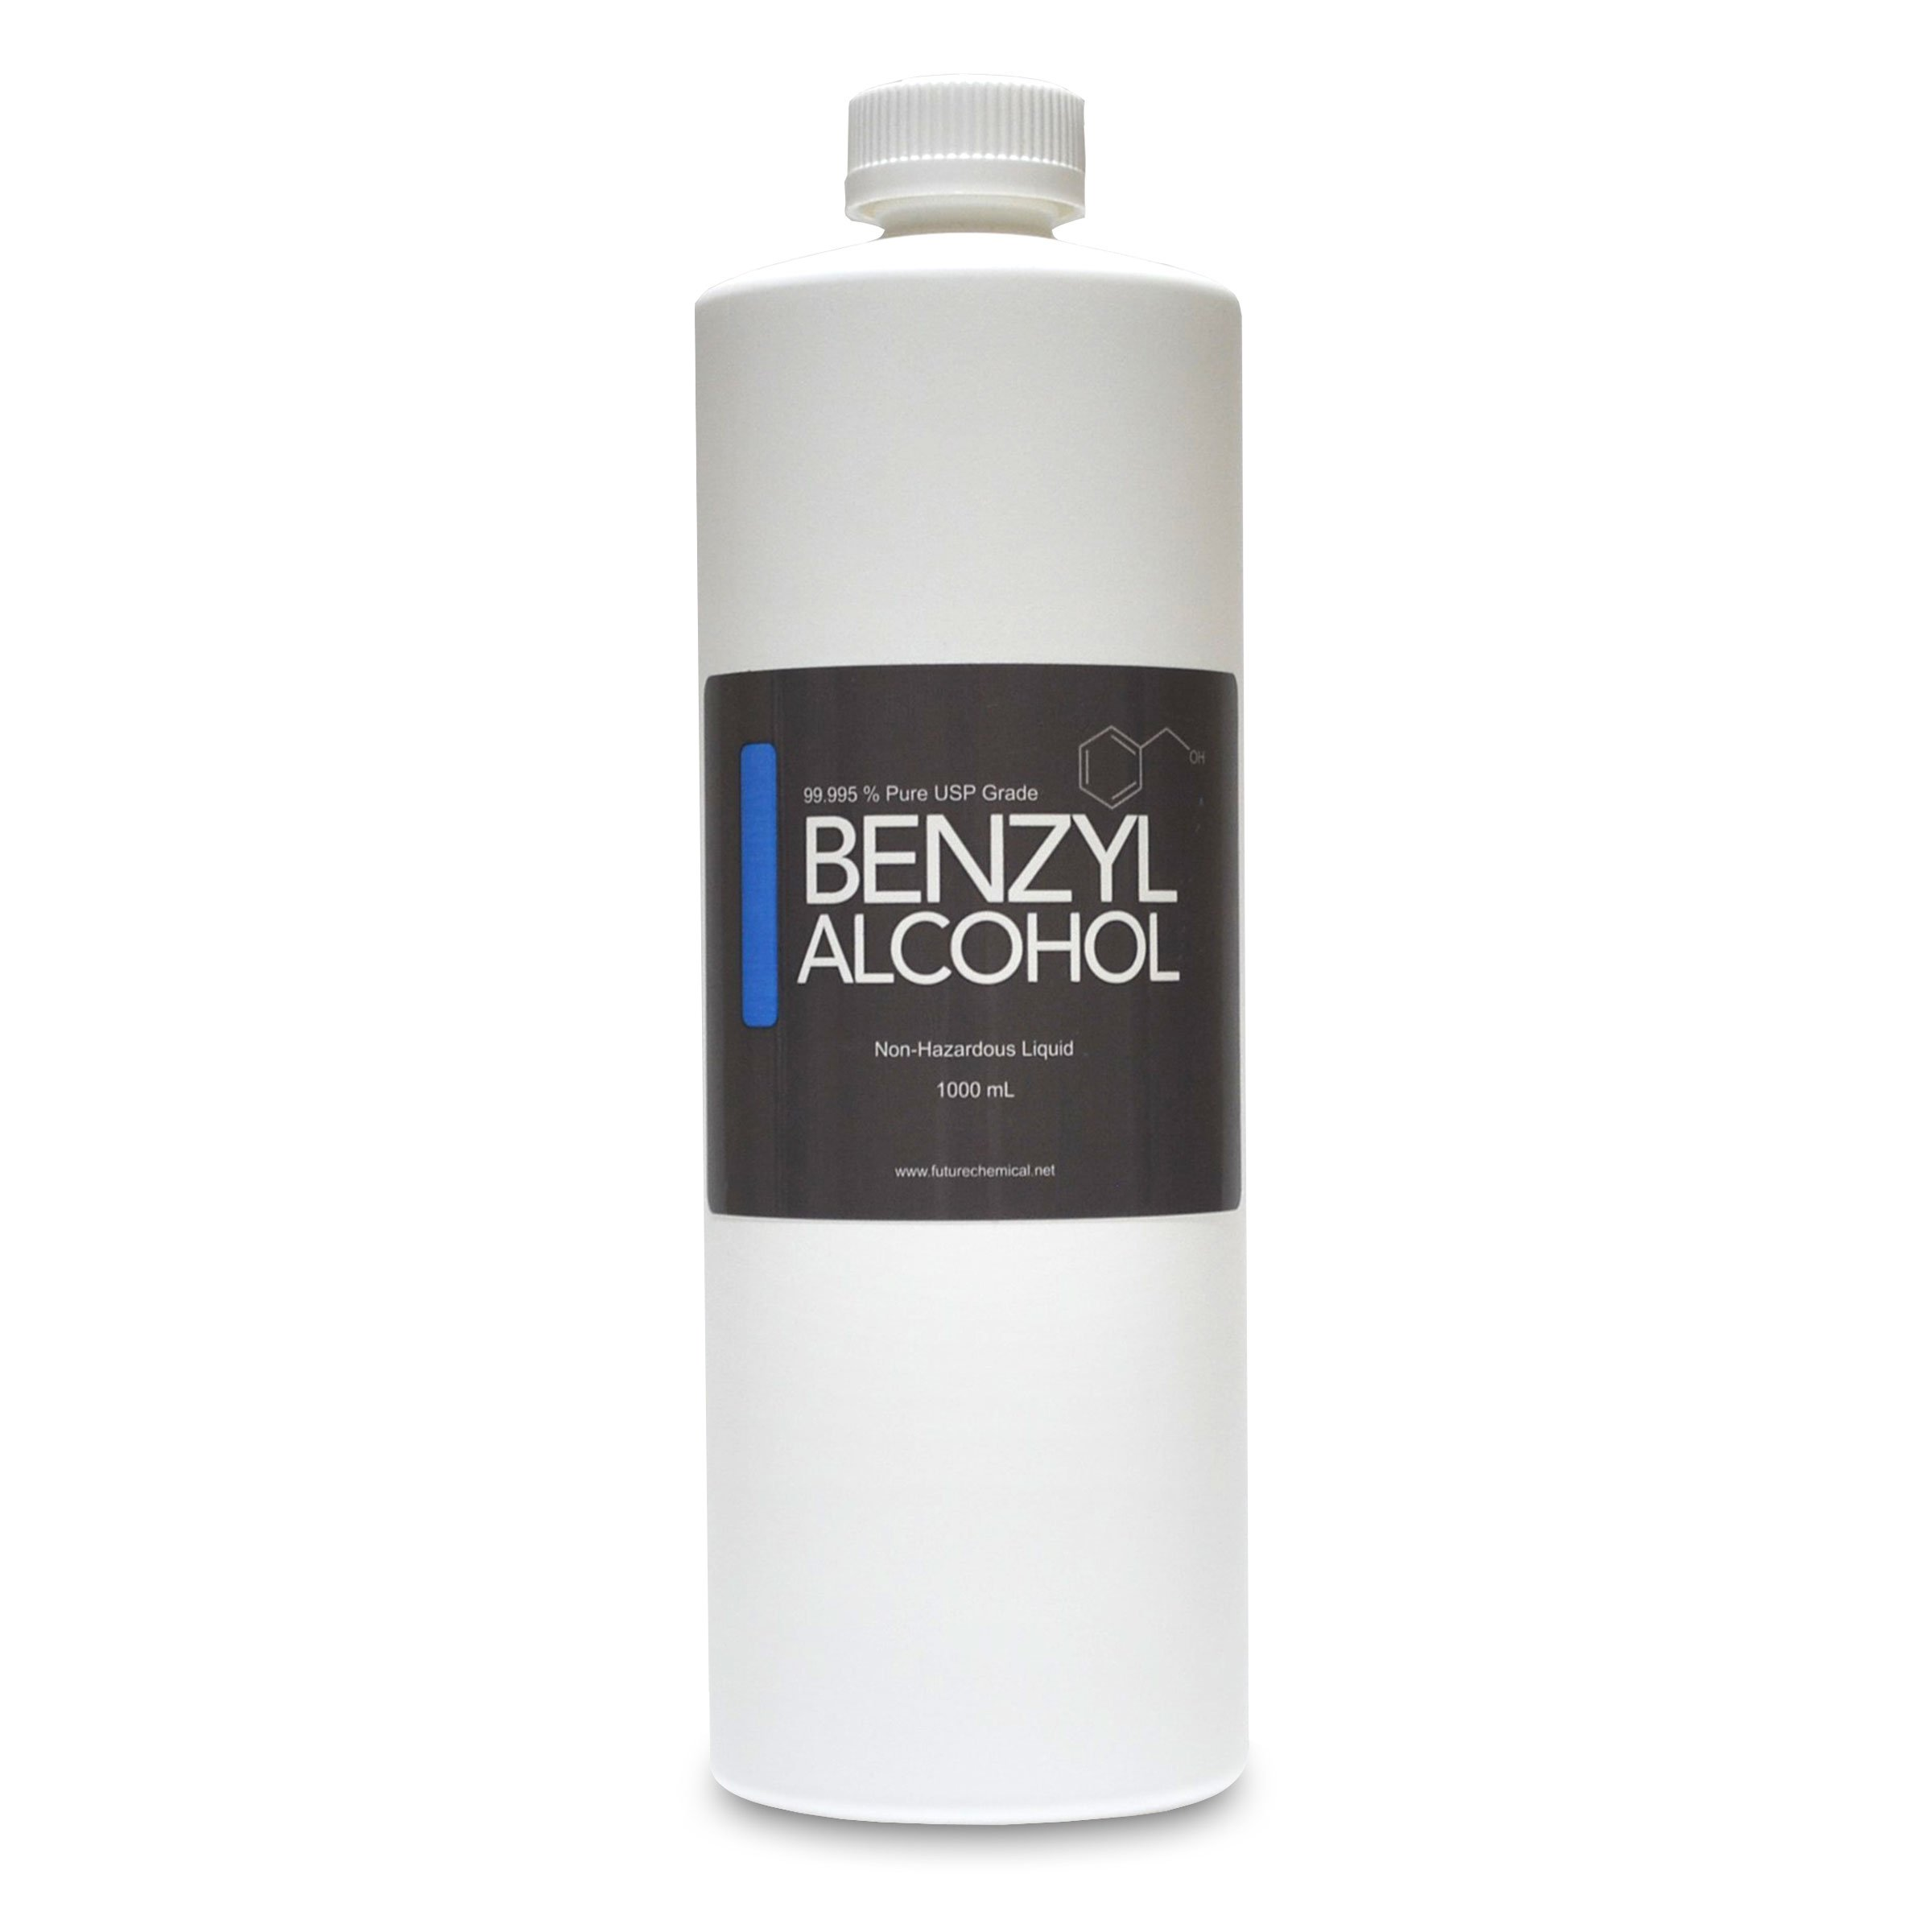 Benzyl Alcohol 1000 ML (32 OZ) USP Grade in Sterile Plastic Bottle (BPA FREE)